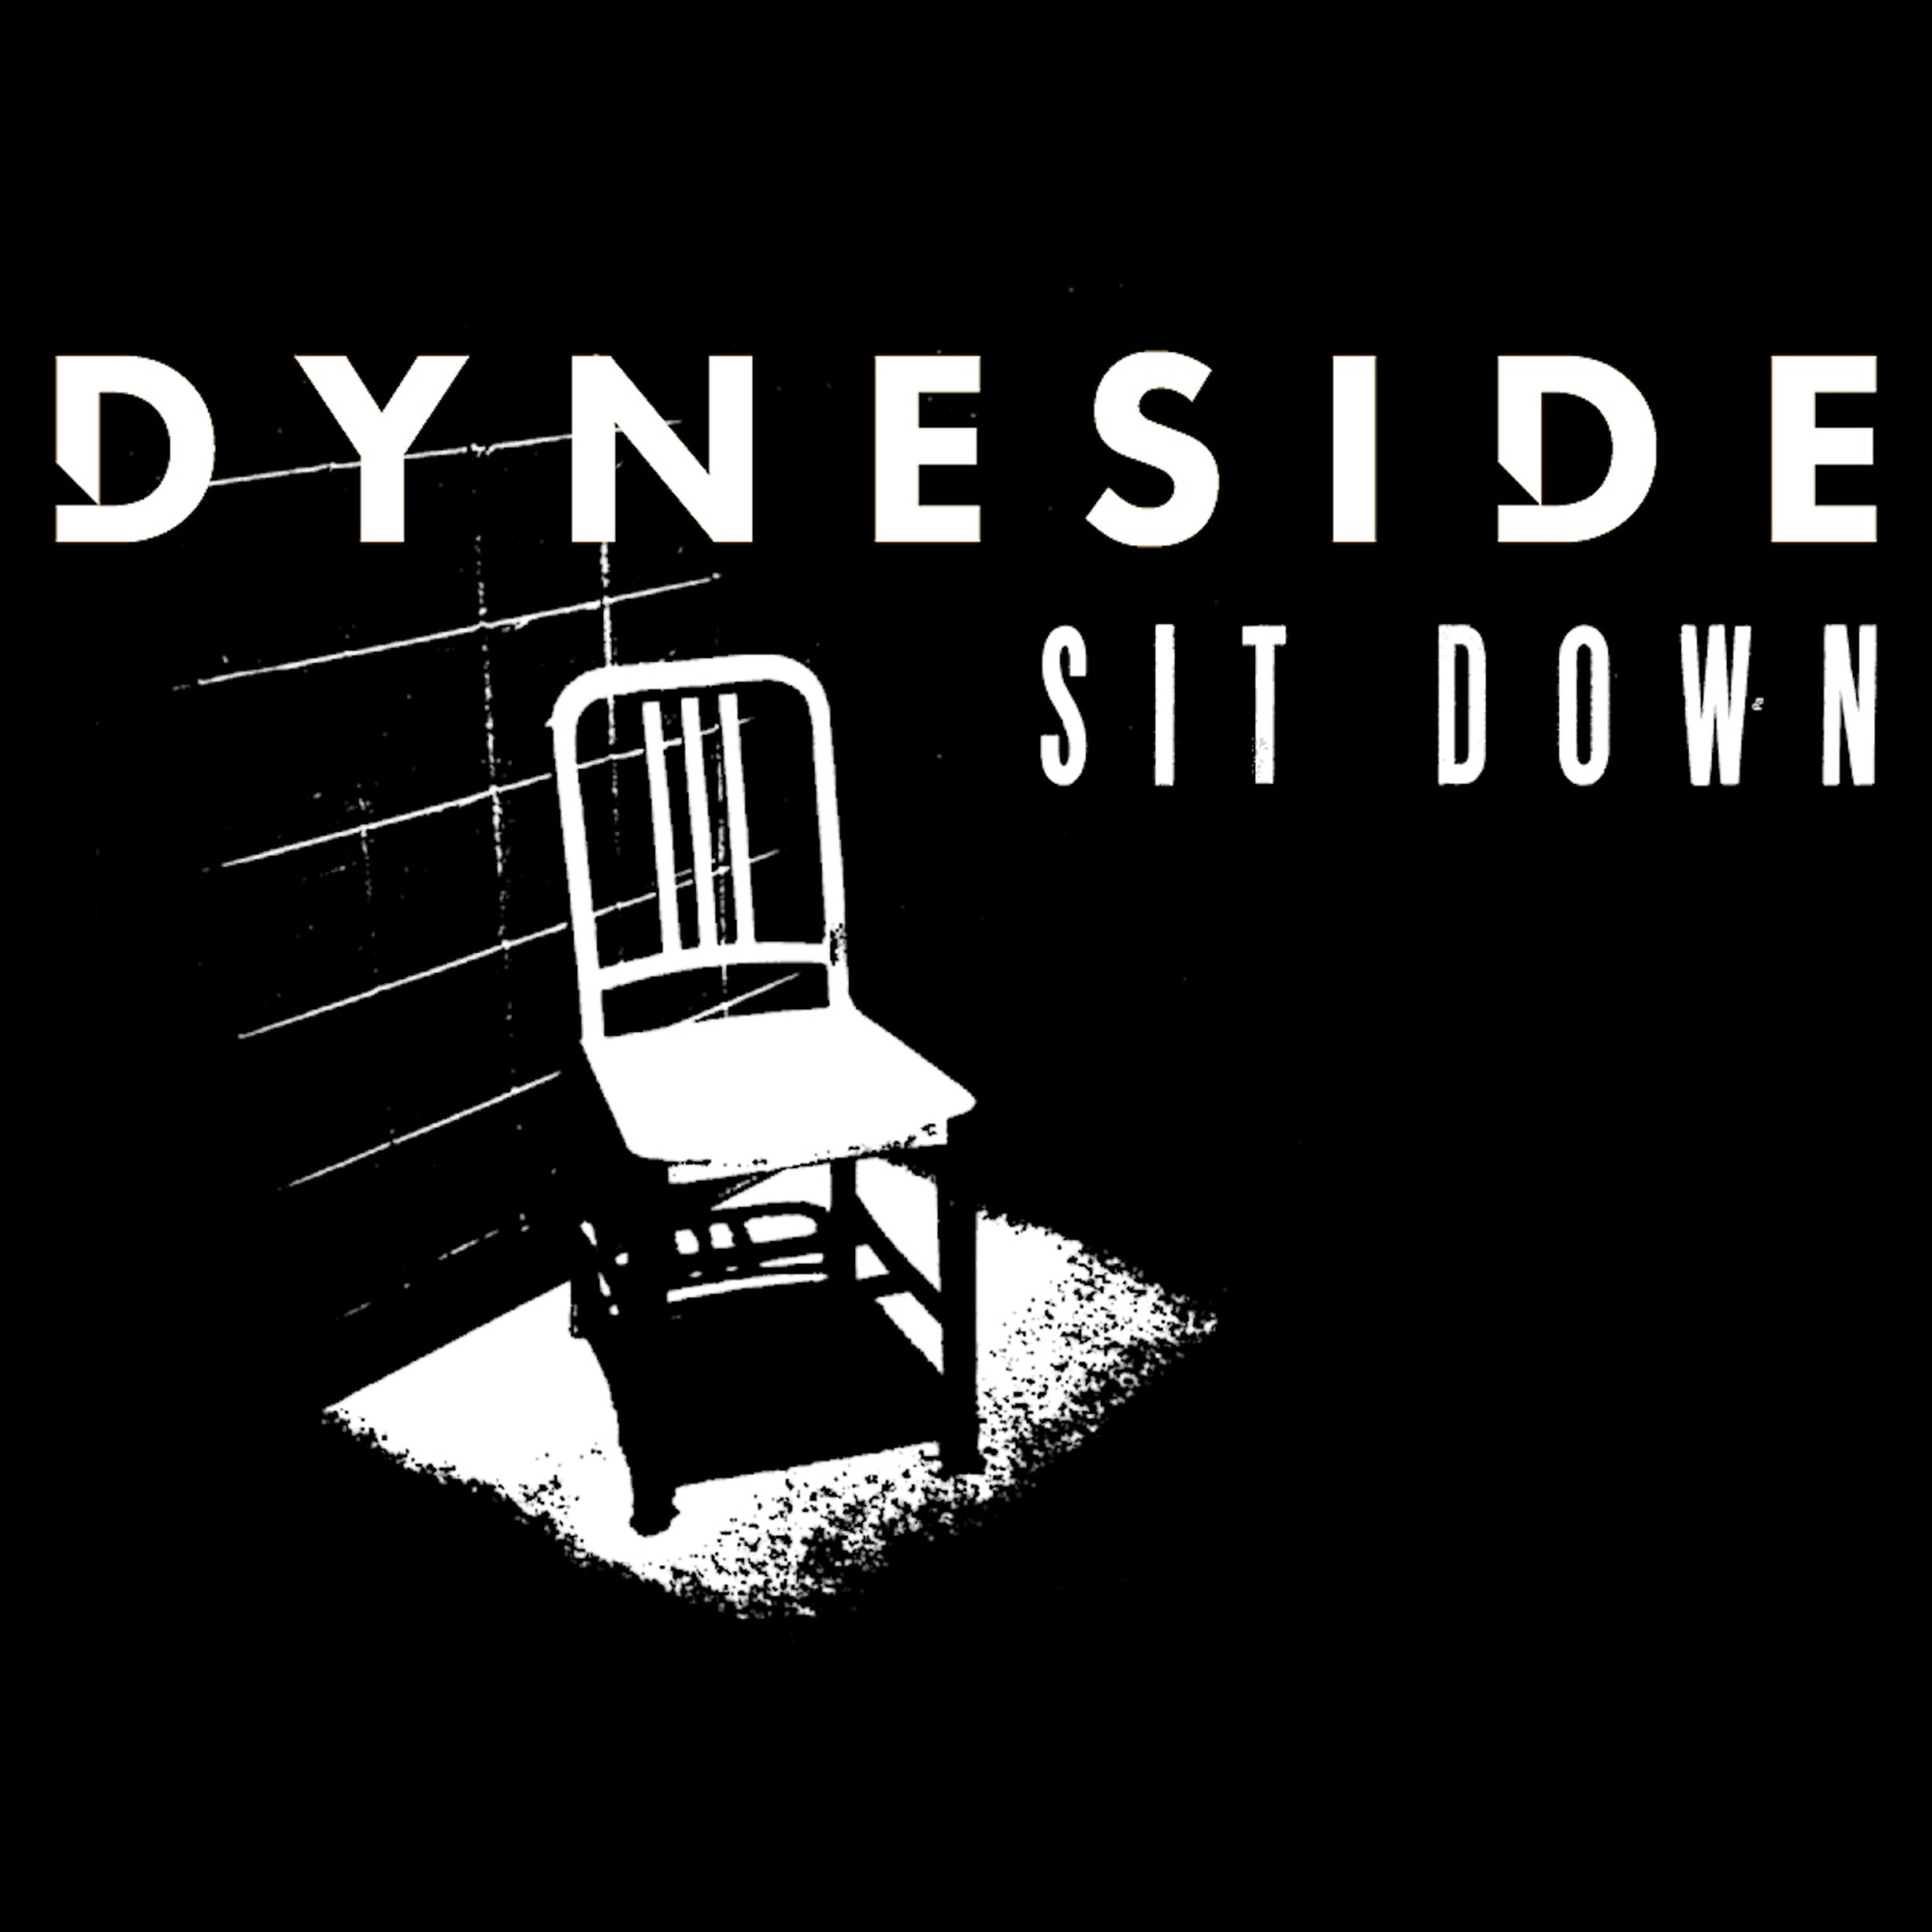 sit down cover JP.jpg